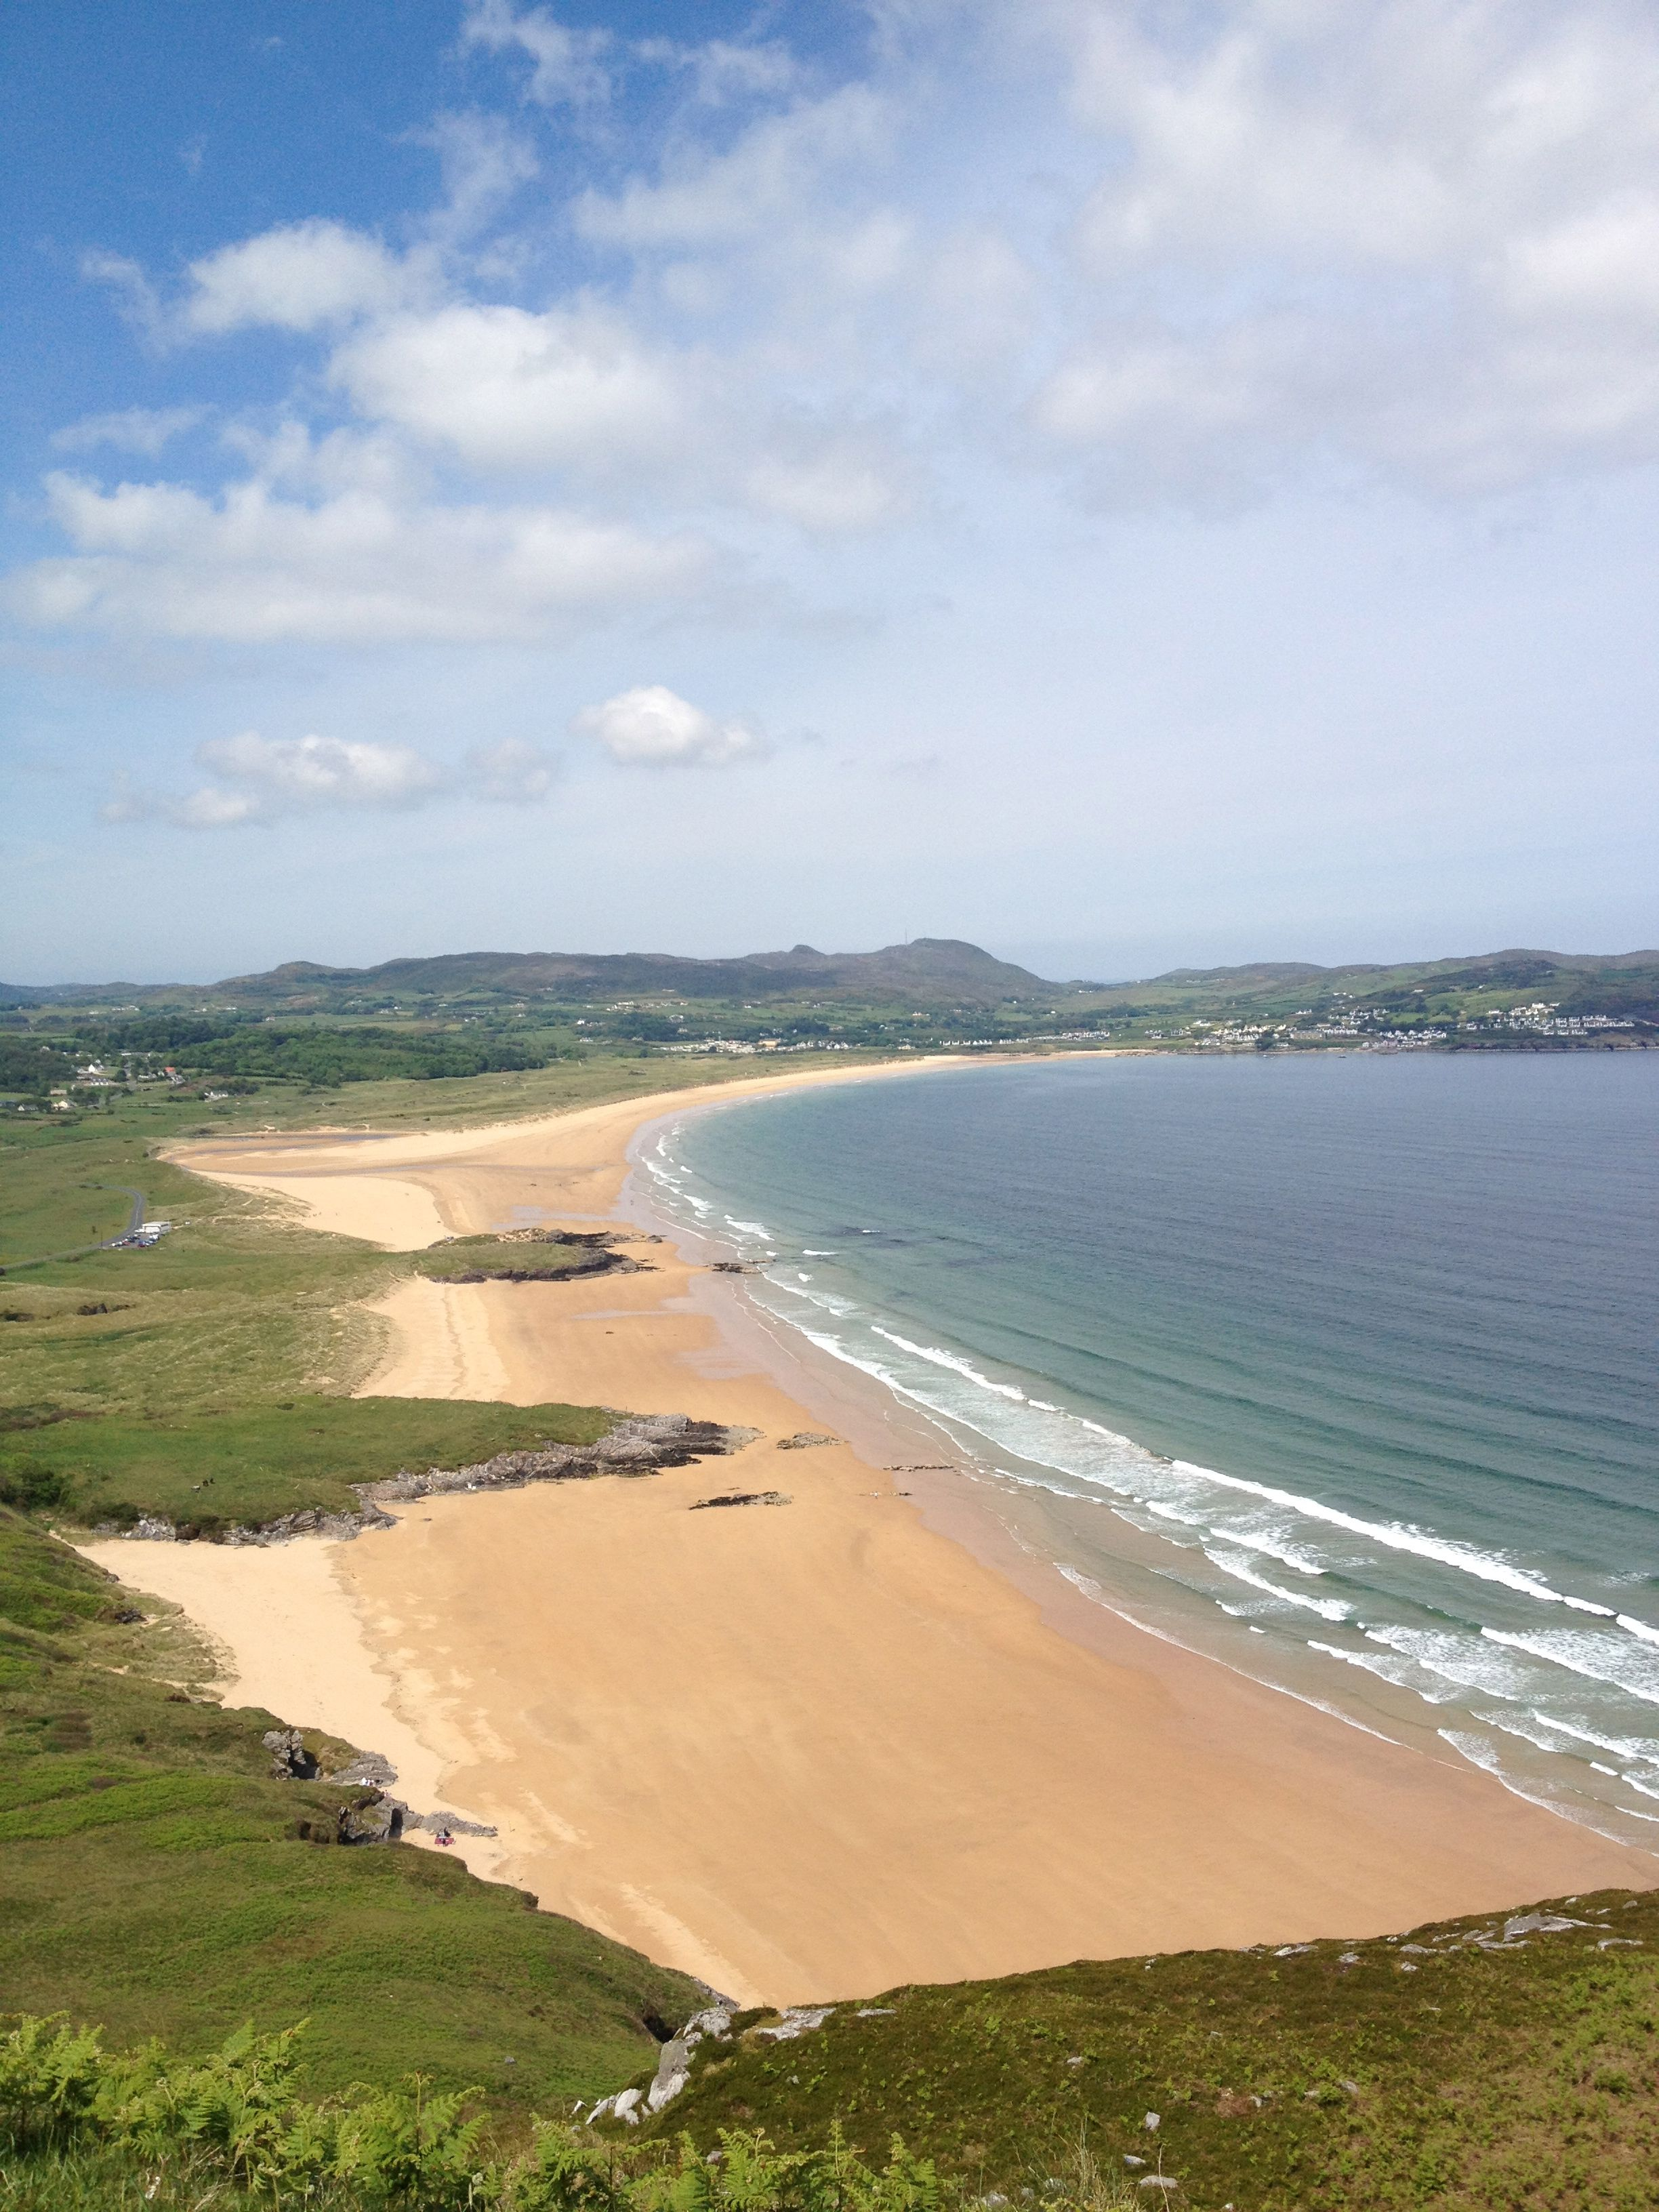 Donegal in Ireland